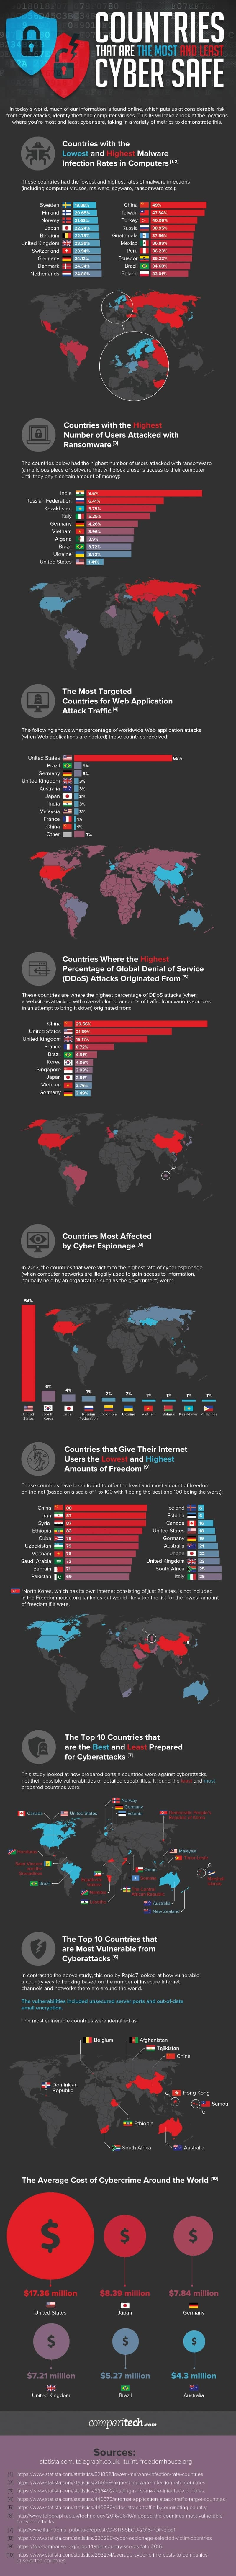 Cyber security and internet freedom statistics by country. Which are most and least safe?